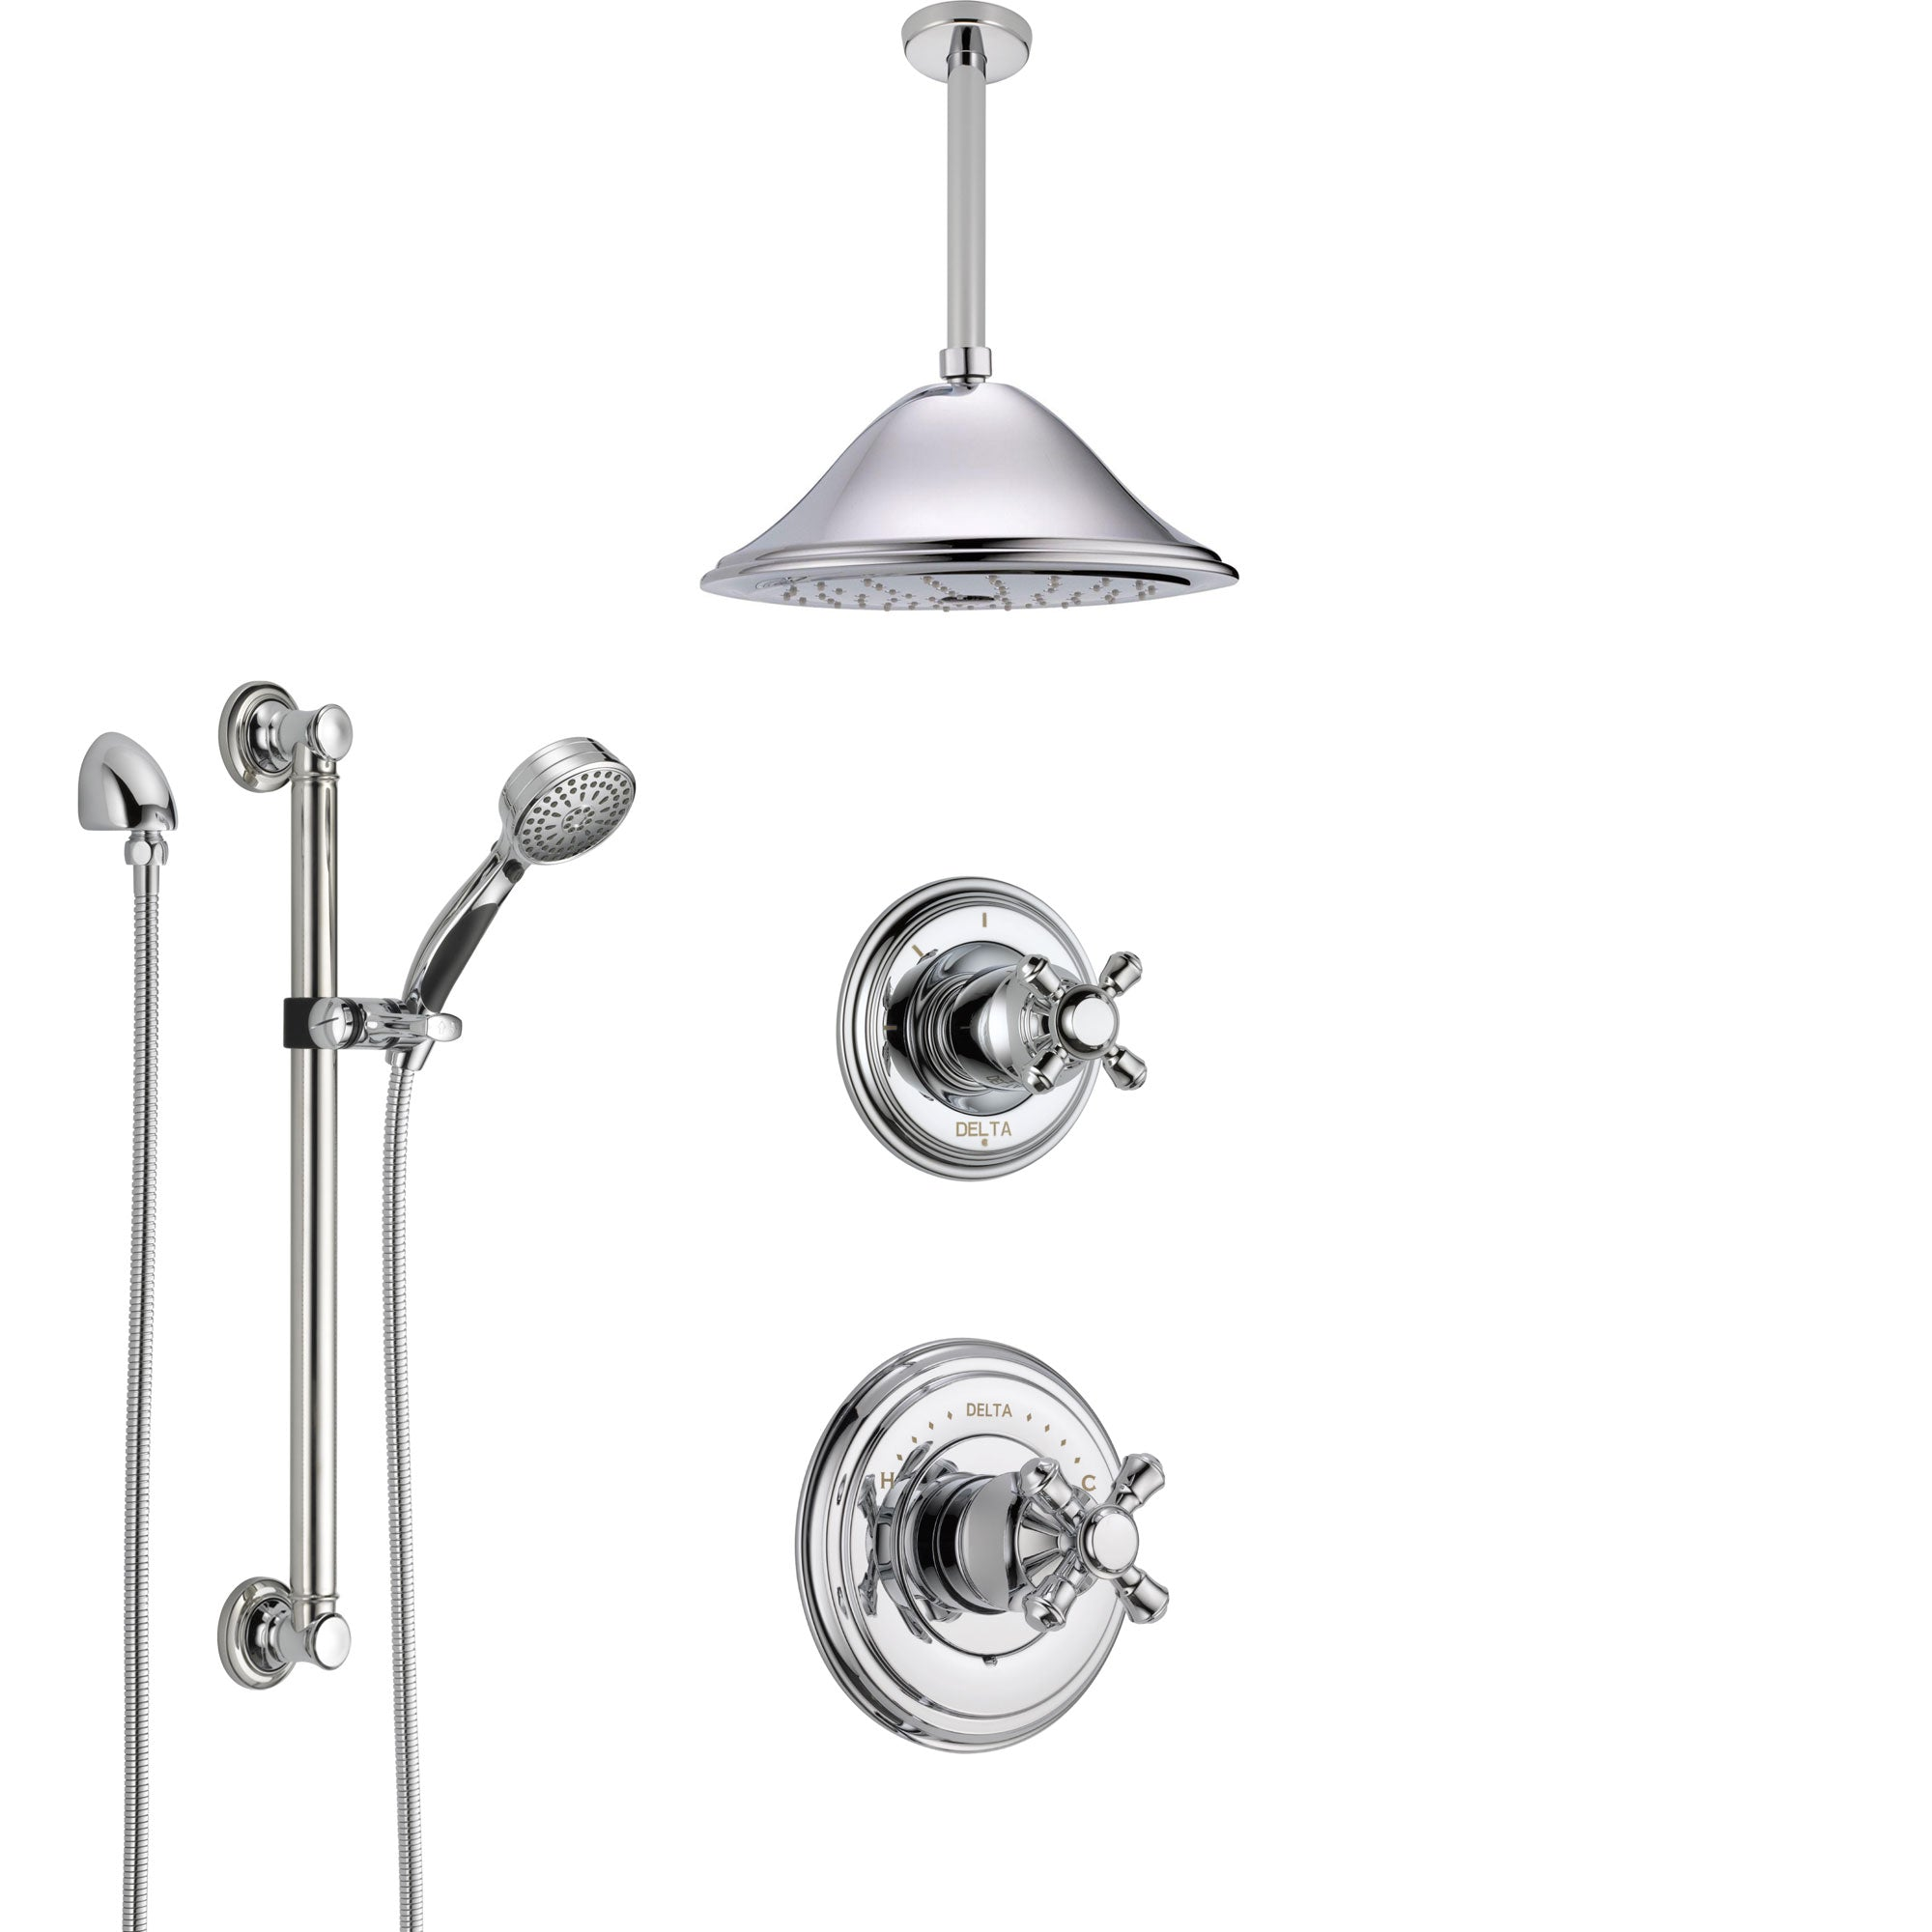 Delta Cassidy Chrome Finish Shower System with Control Handle, 3-Setting Diverter, Ceiling Mount Showerhead, and Hand Shower with Grab Bar SS149725